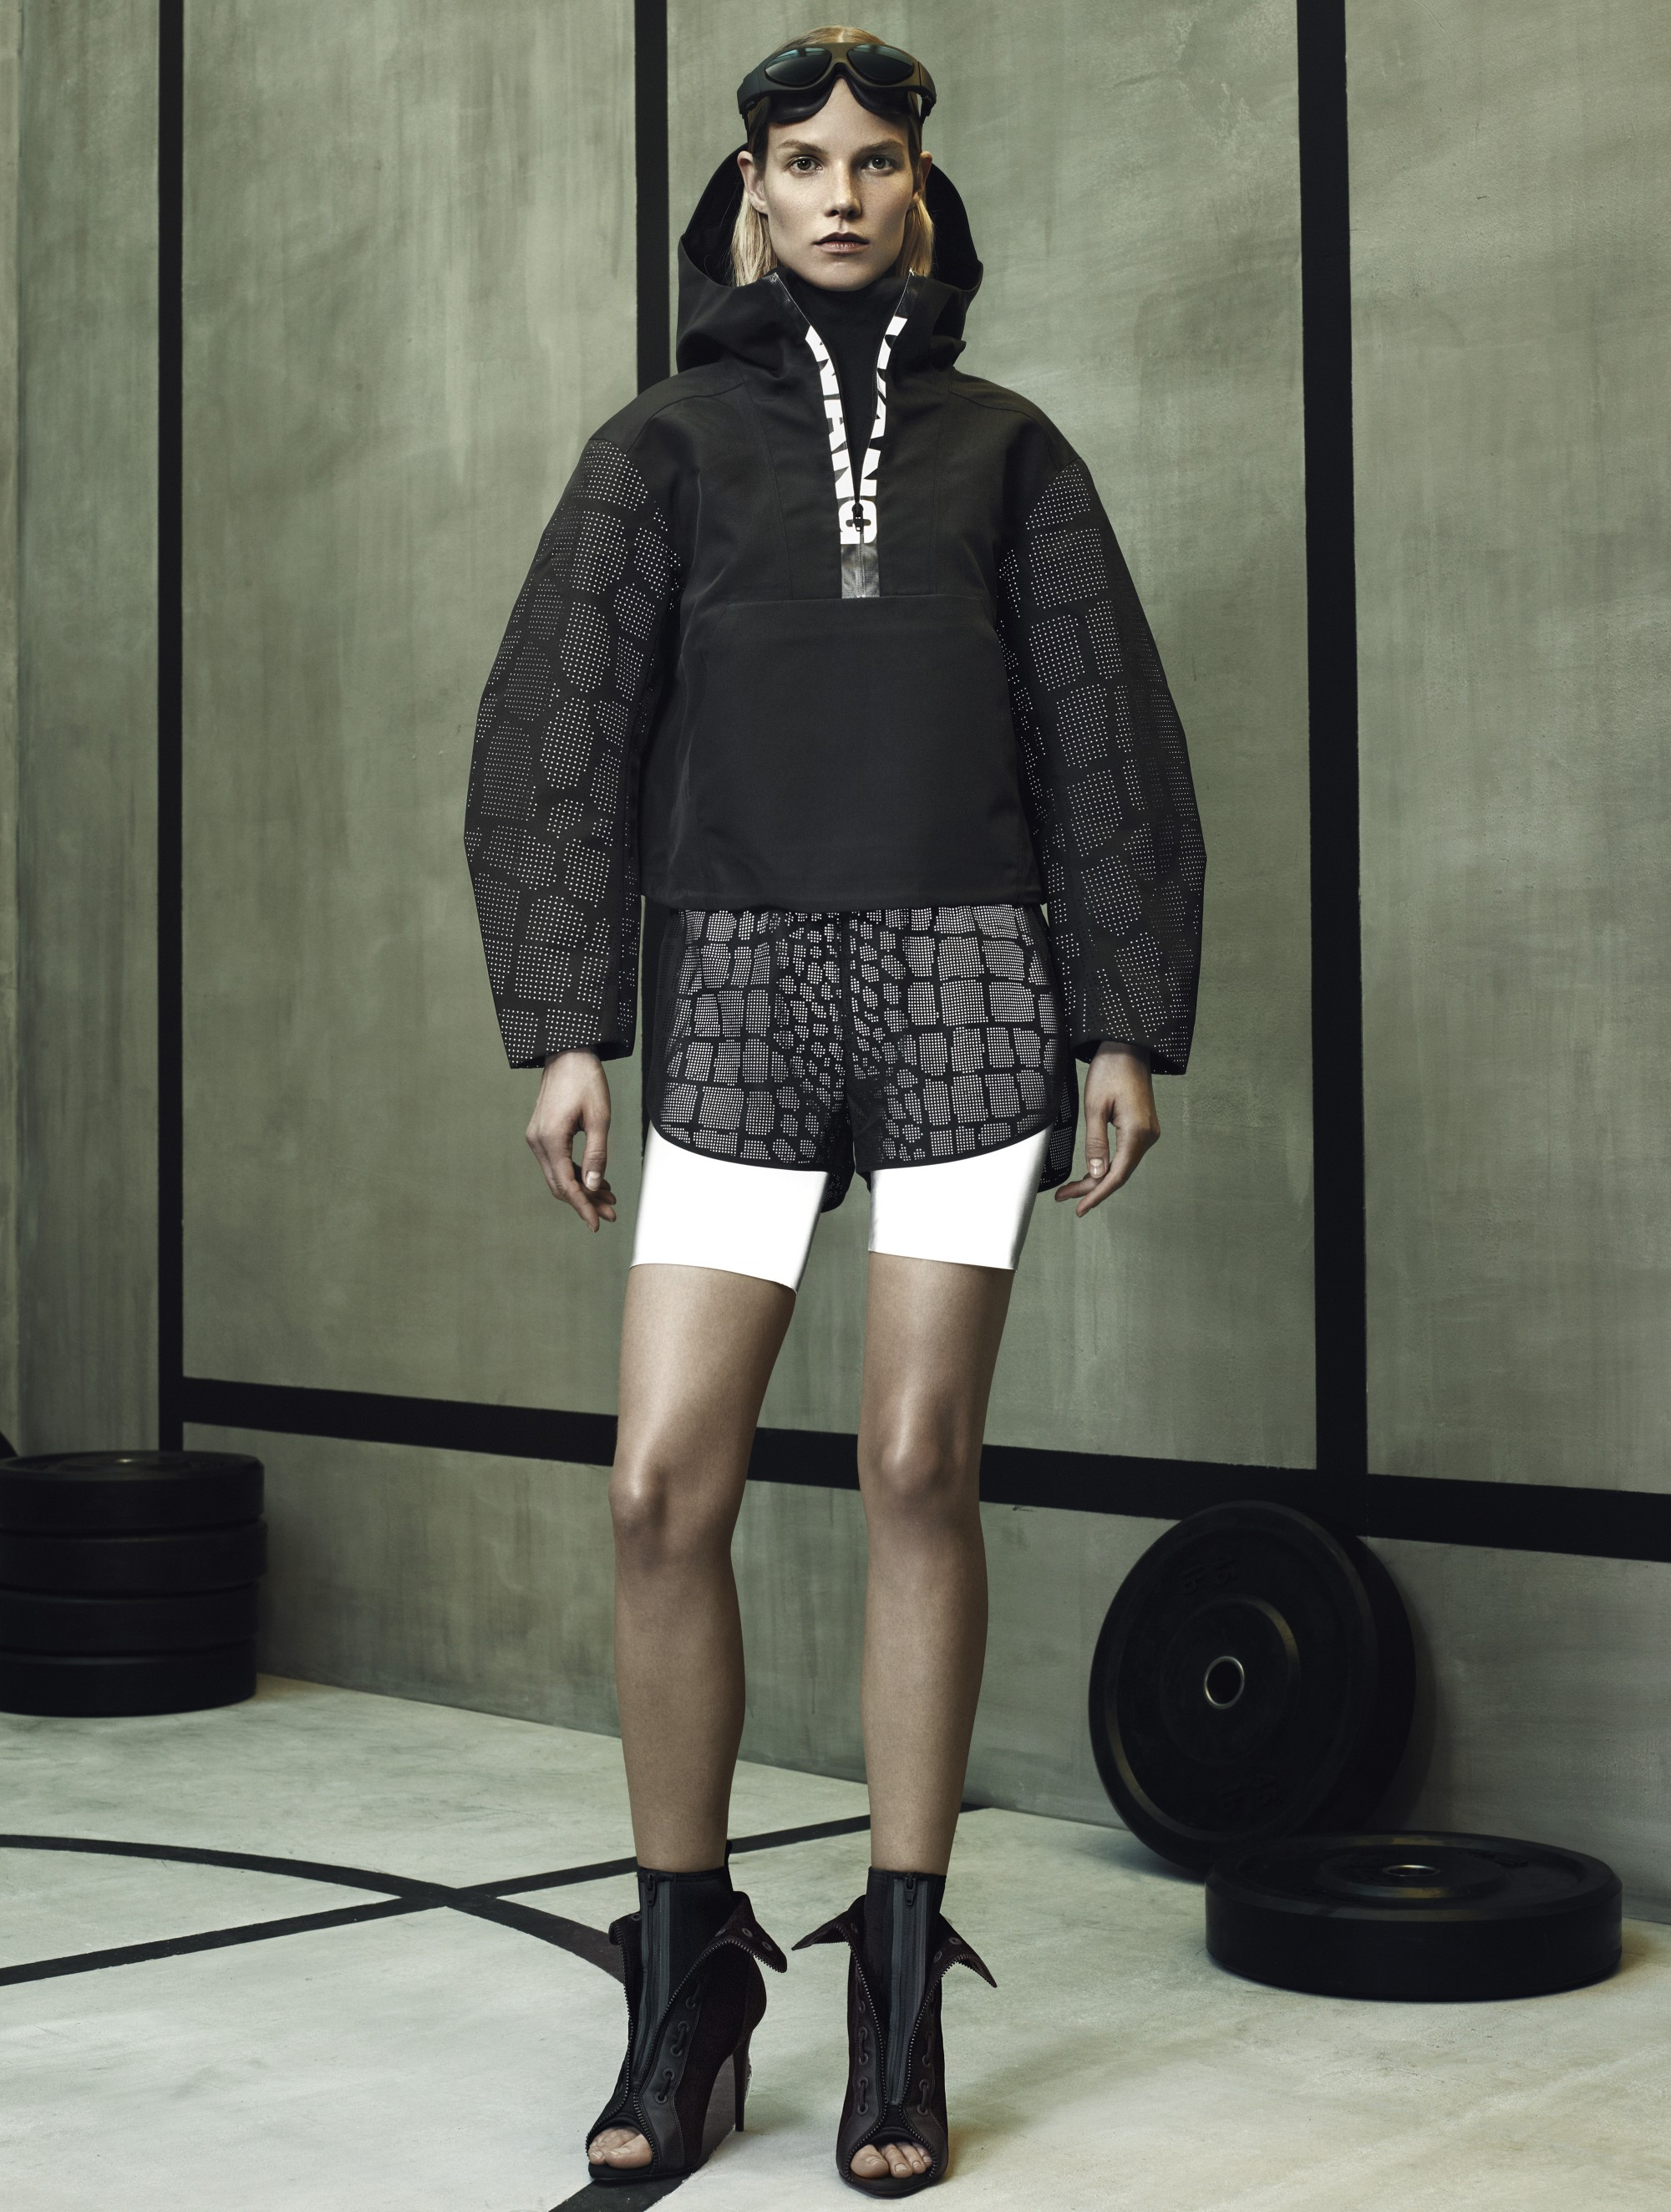 Bike Shorts - The Scourge/Trend of 2016   www.styledomination.com